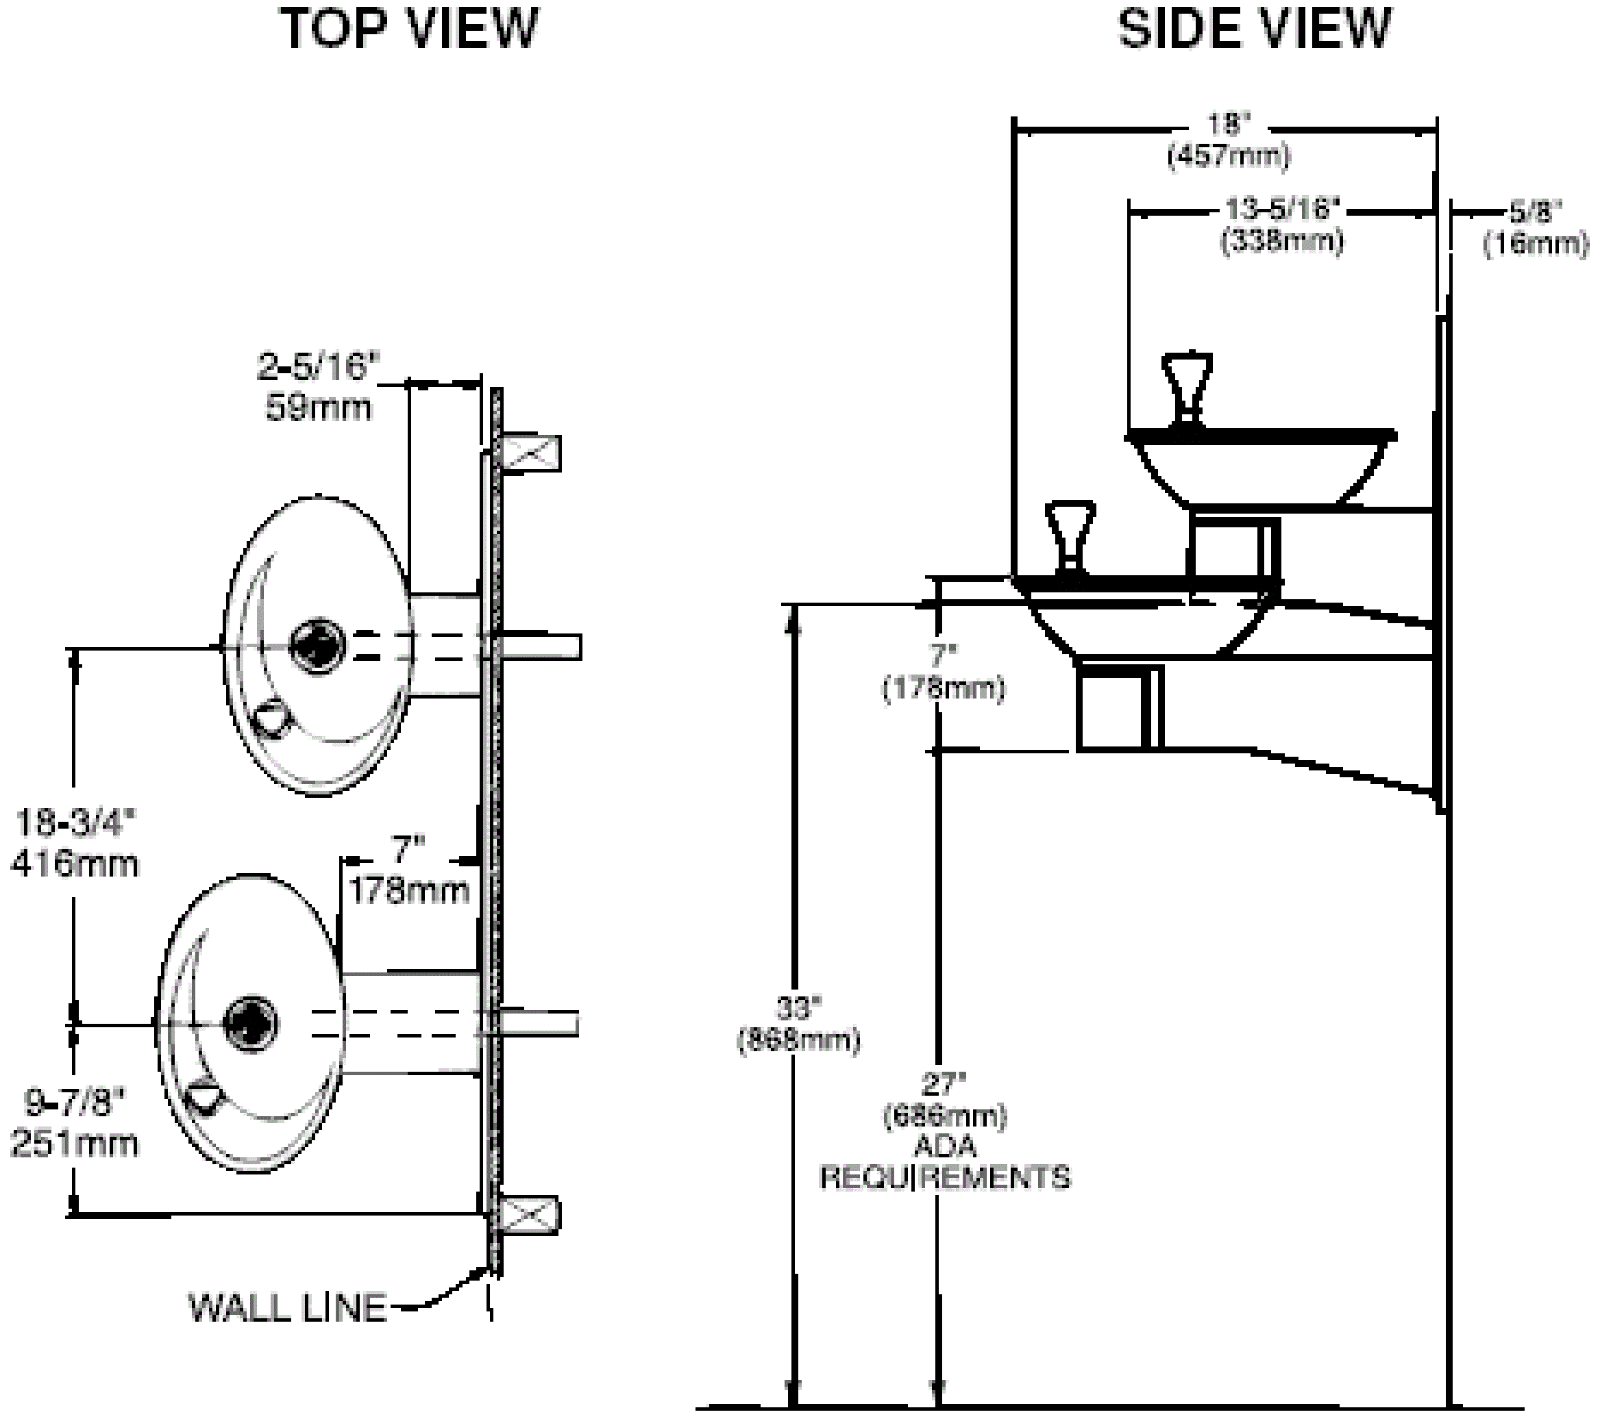 Ada Drinking Fountain Requirements Halsey Taylor Wiring Diagram Of Ovlserq Architectural Water 1600x1421